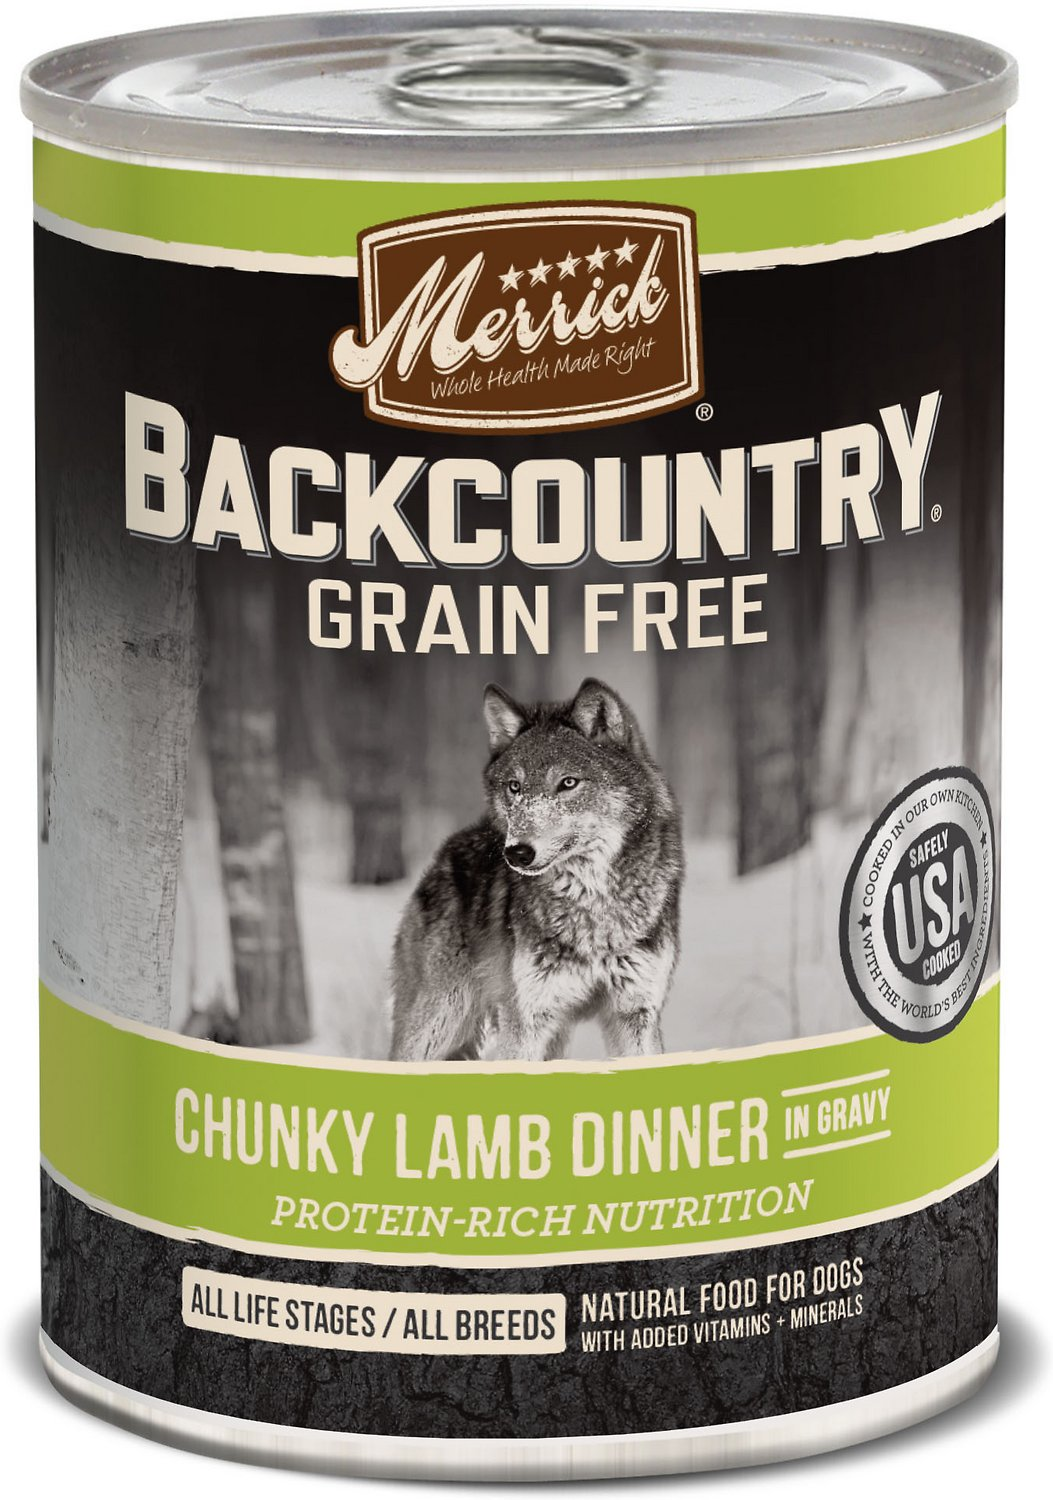 Merrick Backcountry Grain-Free Chunky Lamb Dinner in Gravy Canned Dog Food, 12.7-oz, case of 12